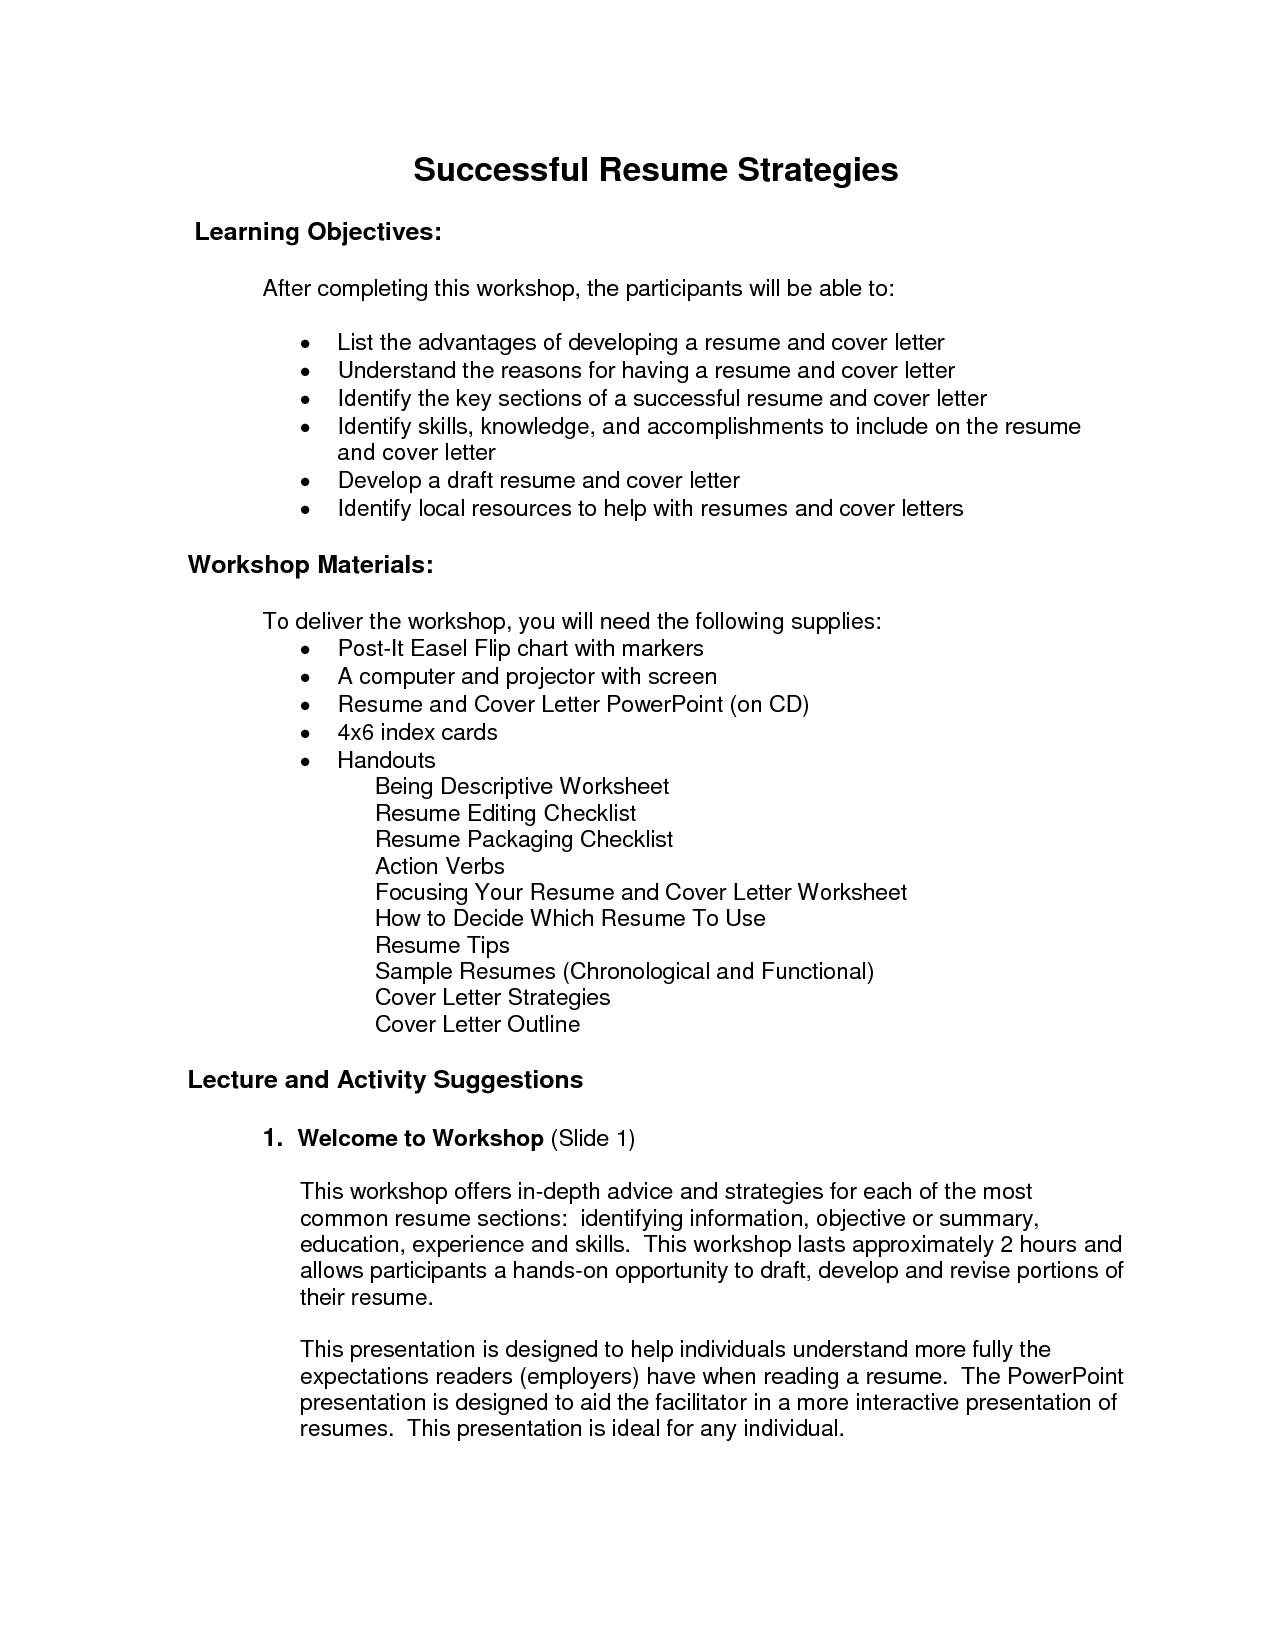 fashion stylist resume objective httpwwwresumecareerinfofashion - What To Write For Resume Objective